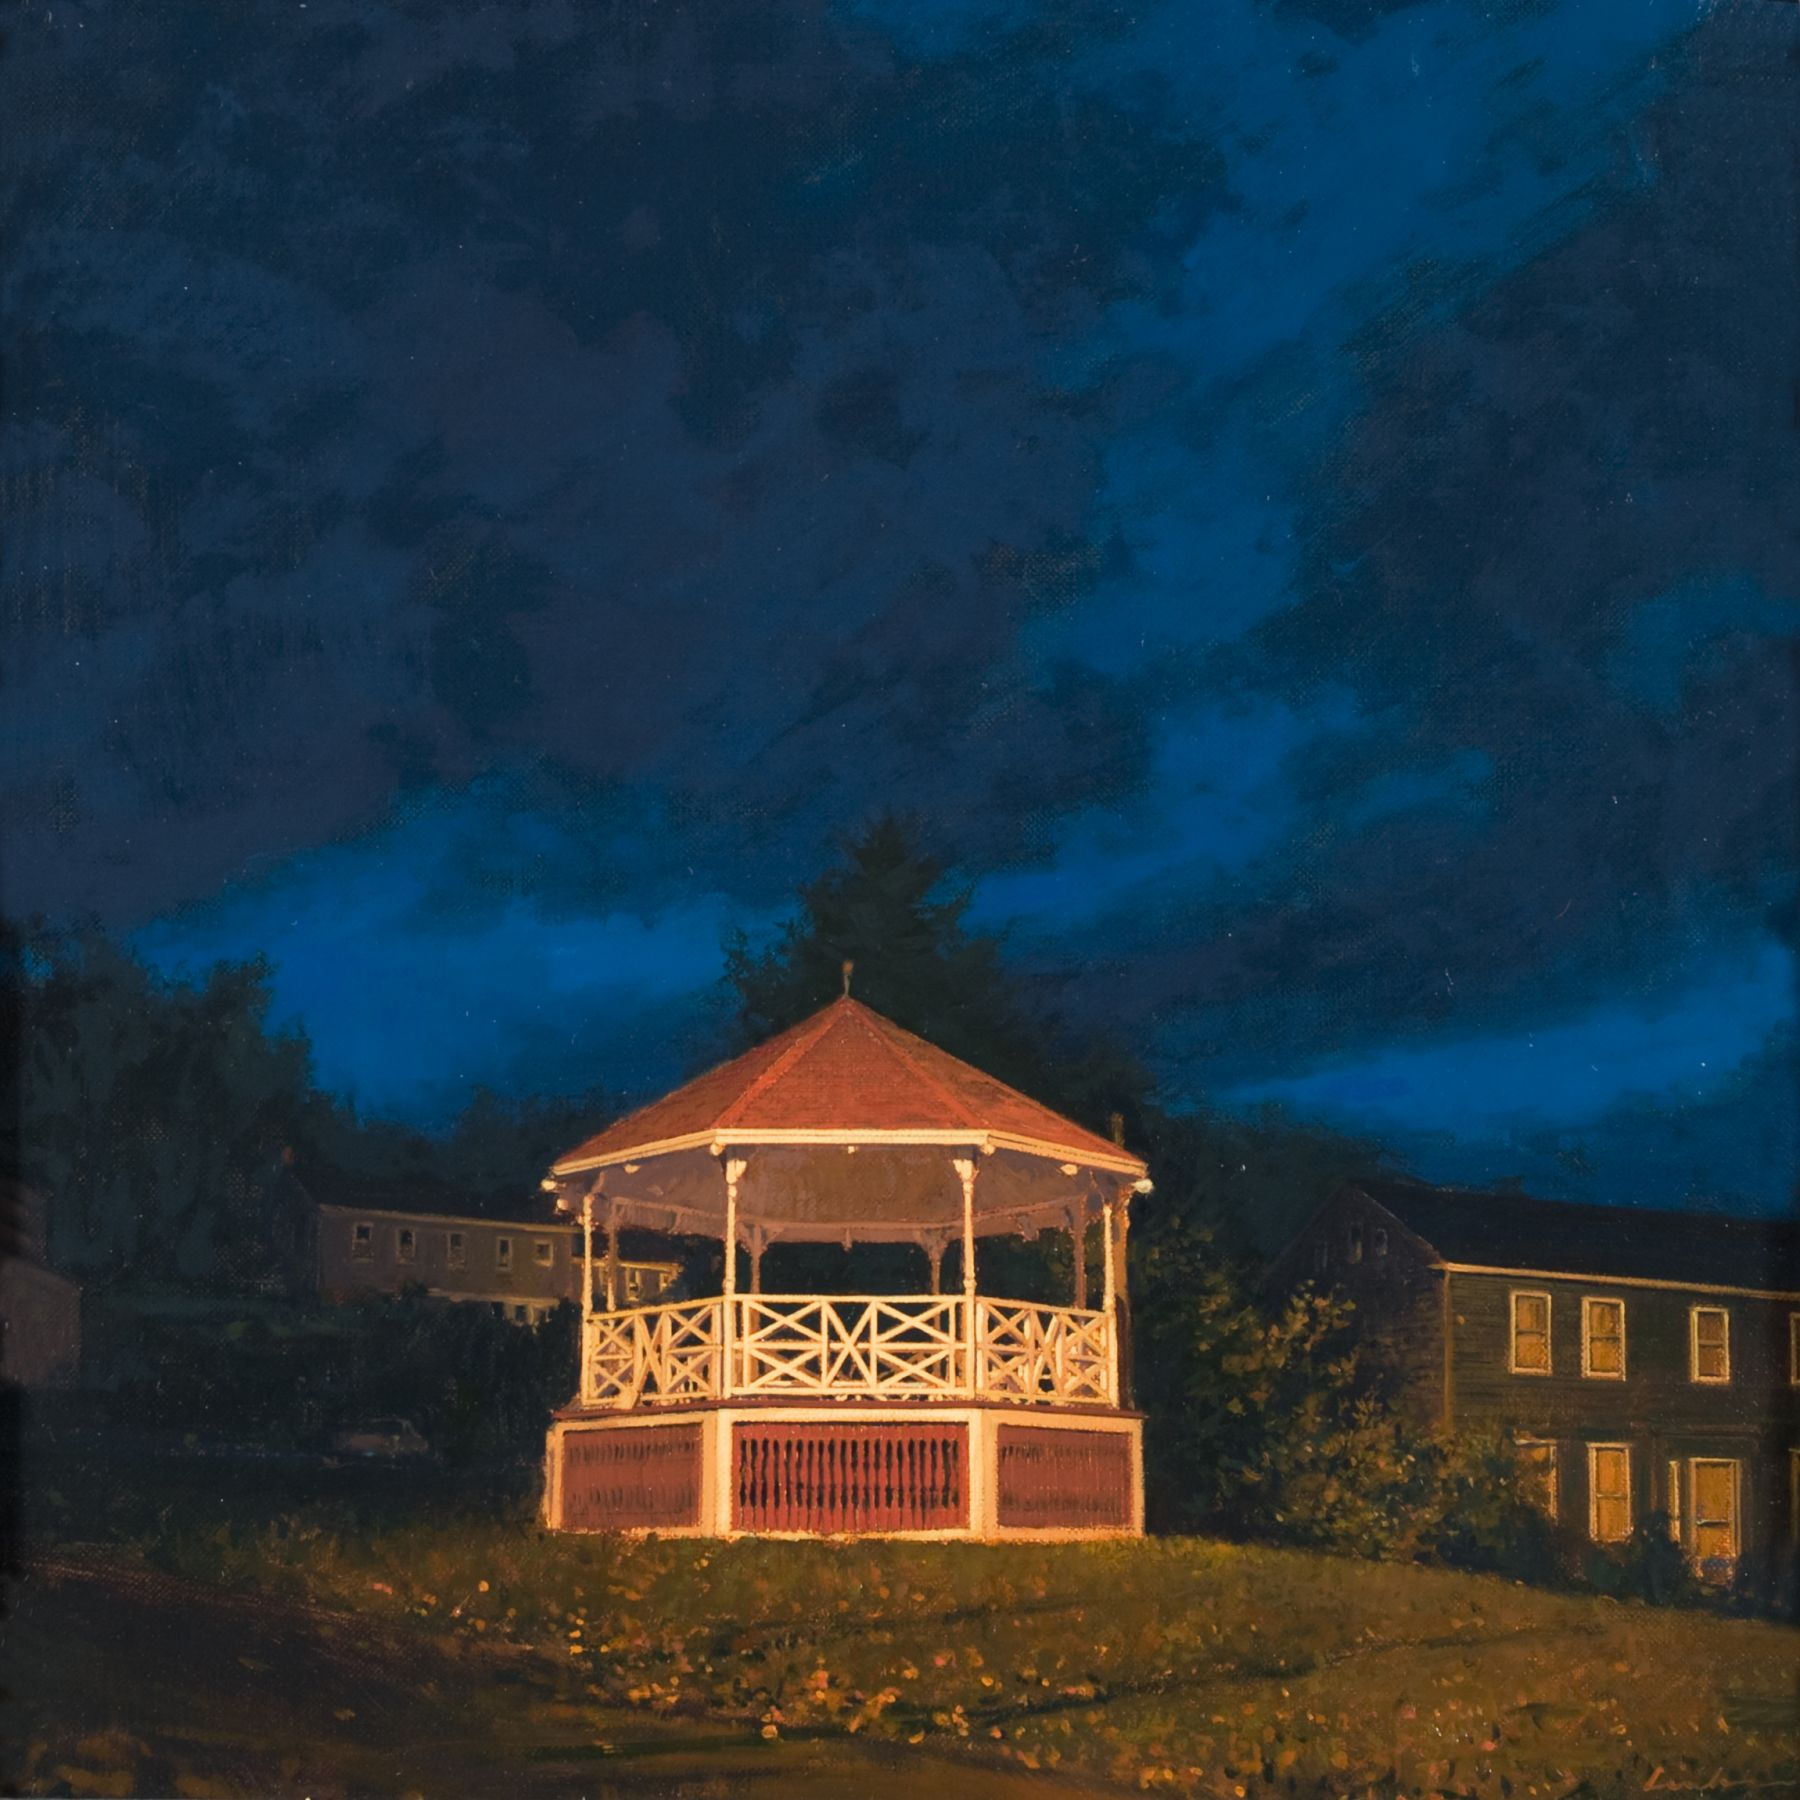 linden frederick, American Bandstand, 2008, oil on panel, 12 1/4 x 12 1/4 inches